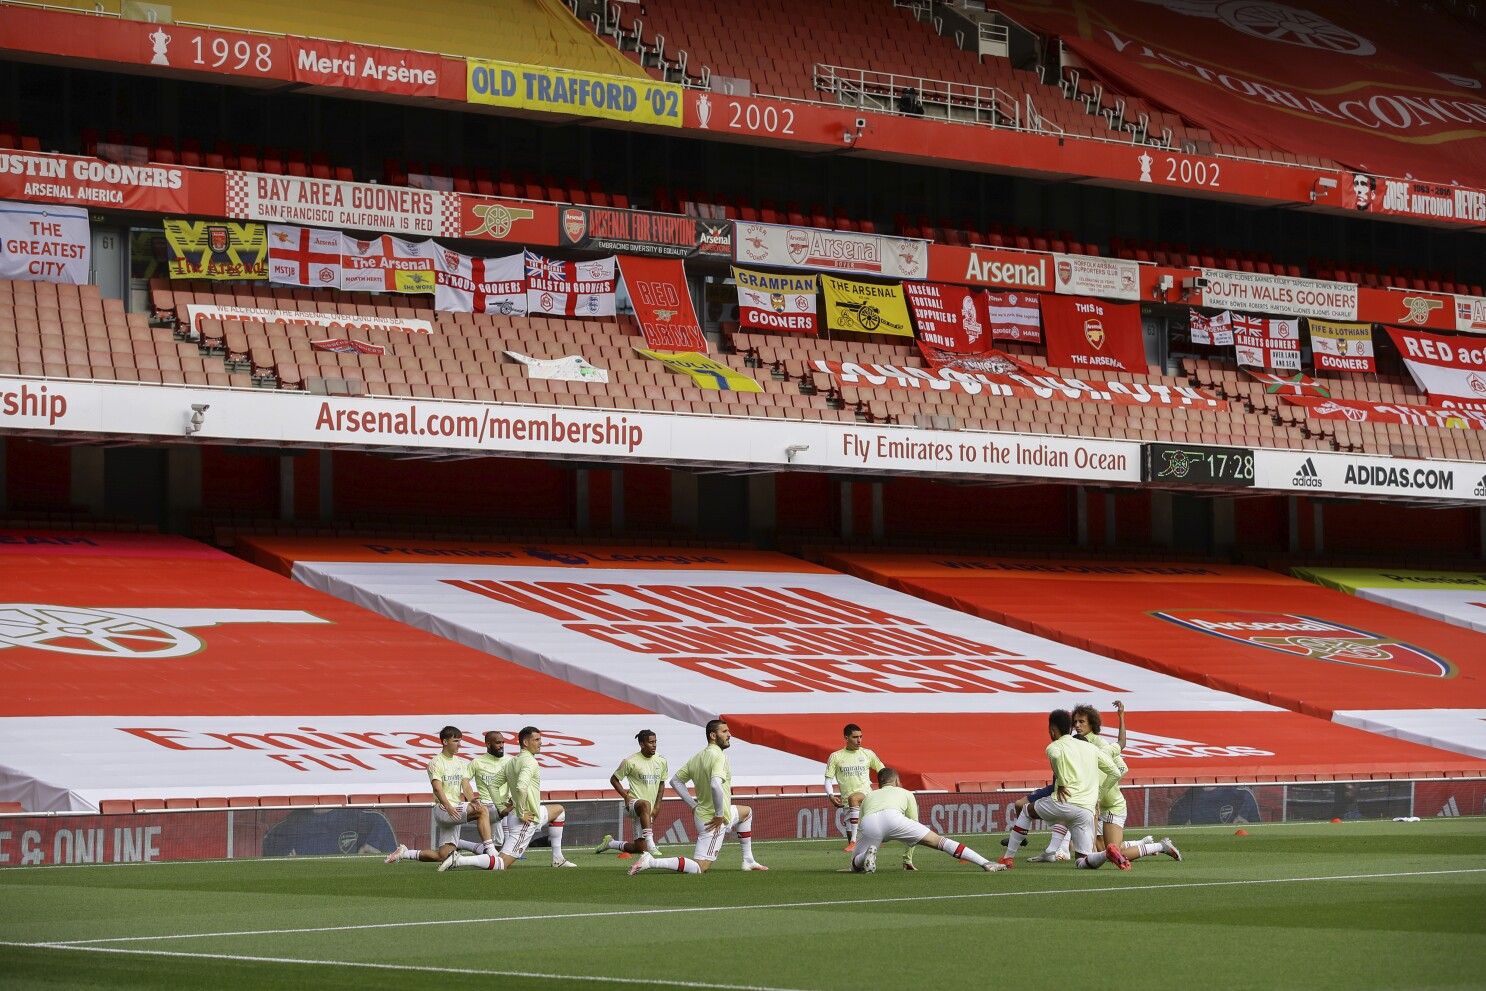 Fifa Fines Arsenal Over Sell On Clauses For Player Transfers The San Diego Union Tribune